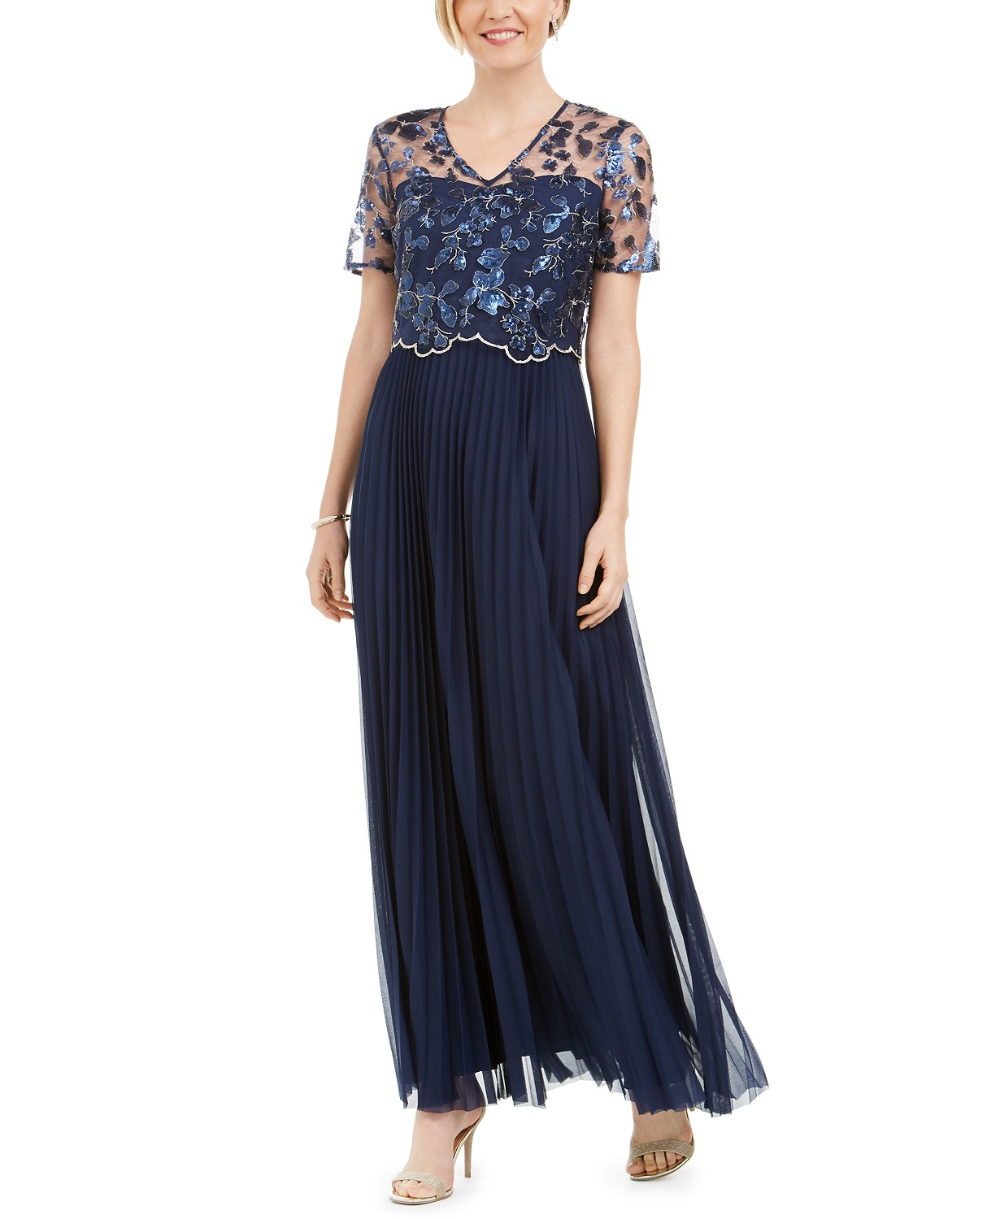 Tahari Asl Embellished Floral Overlay Gown Reviews Dresses Women Macy S In 2020 Print Chiffon Maxi Dress Review Dresses Tahari Asl [ 1219 x 1000 Pixel ]